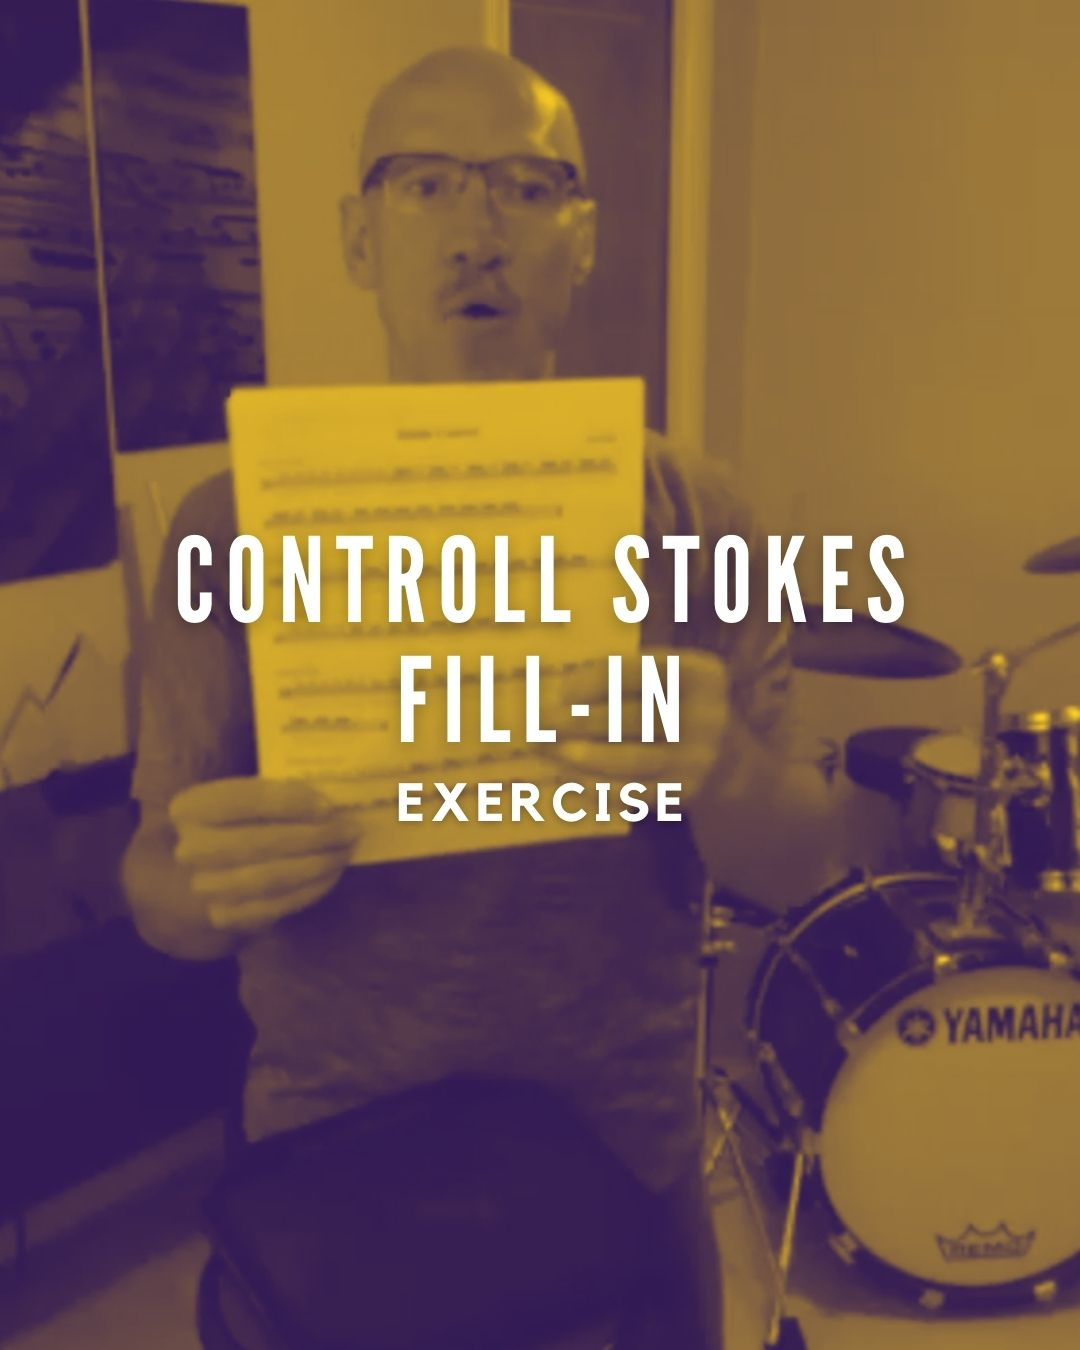 Control Strokes Fill-in